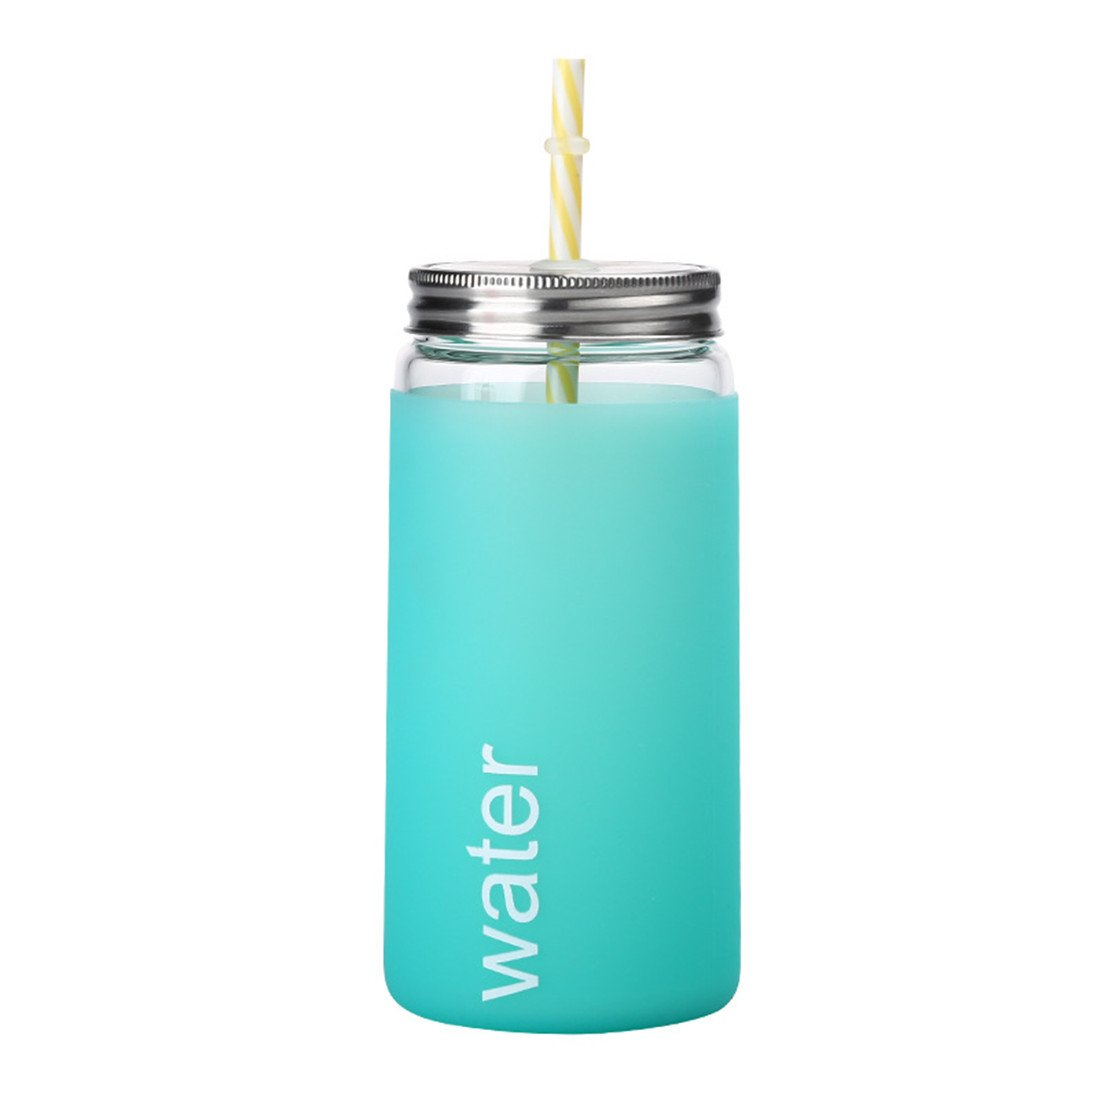 Glass Tumbler Mug with Straw Lid Insulated Silicone Protective Sleeve Mason Jar Tumbler Cup with Straw- Idea for Ice Coffee, Tea,Beverage & Cold Drinking (Mint Green,500ml/17.6oz)